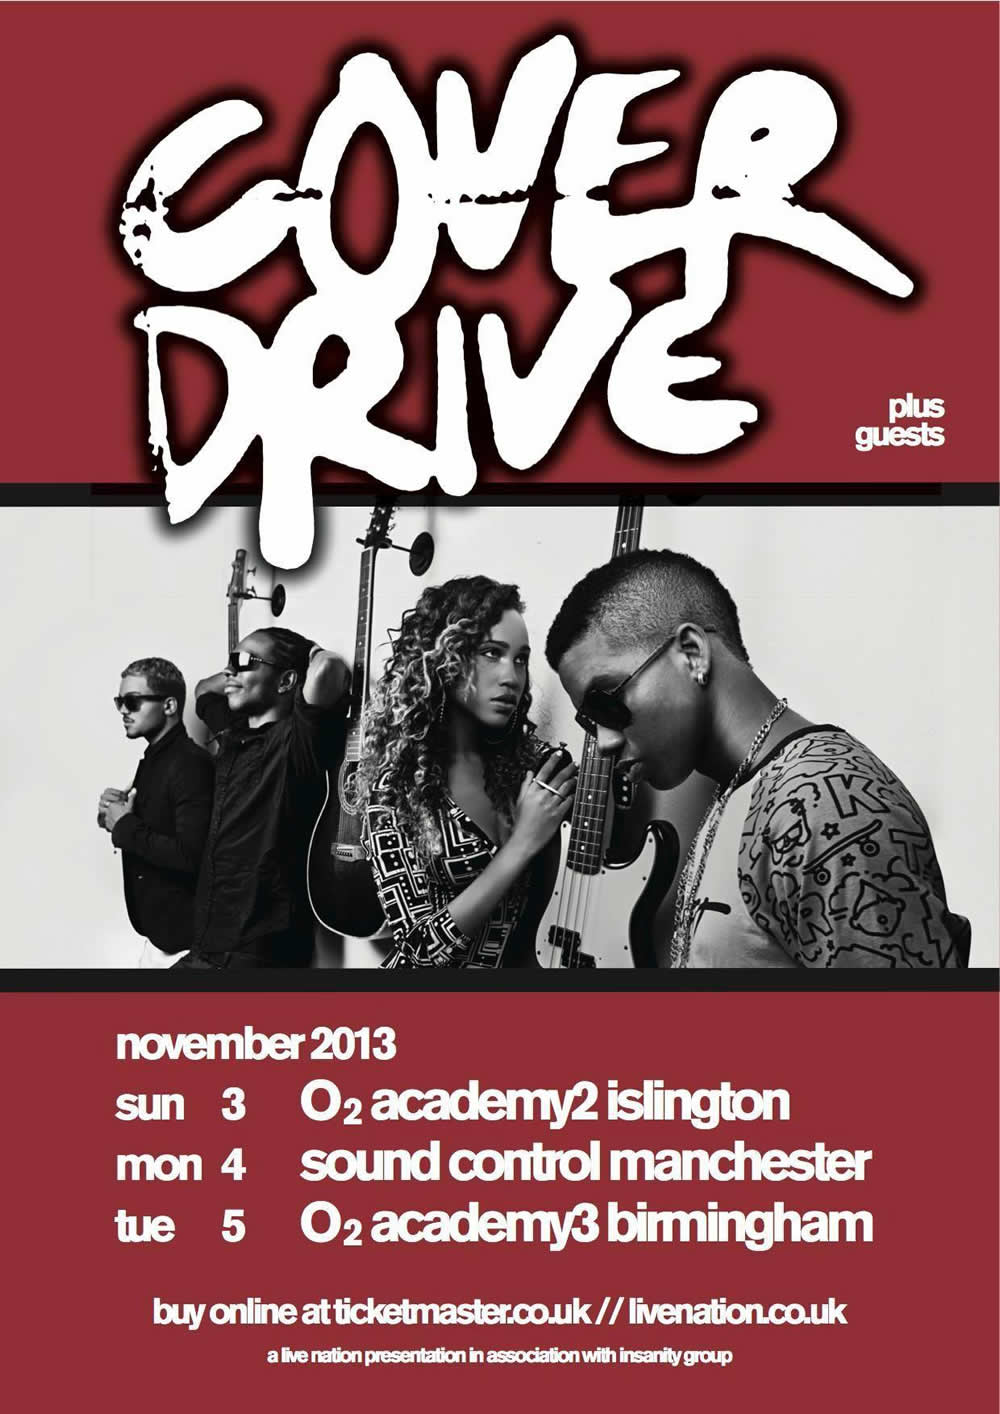 Win meet greet tickets to see cover drive live on sun 3 nov 2013 coverdrive tour poster m4hsunfo